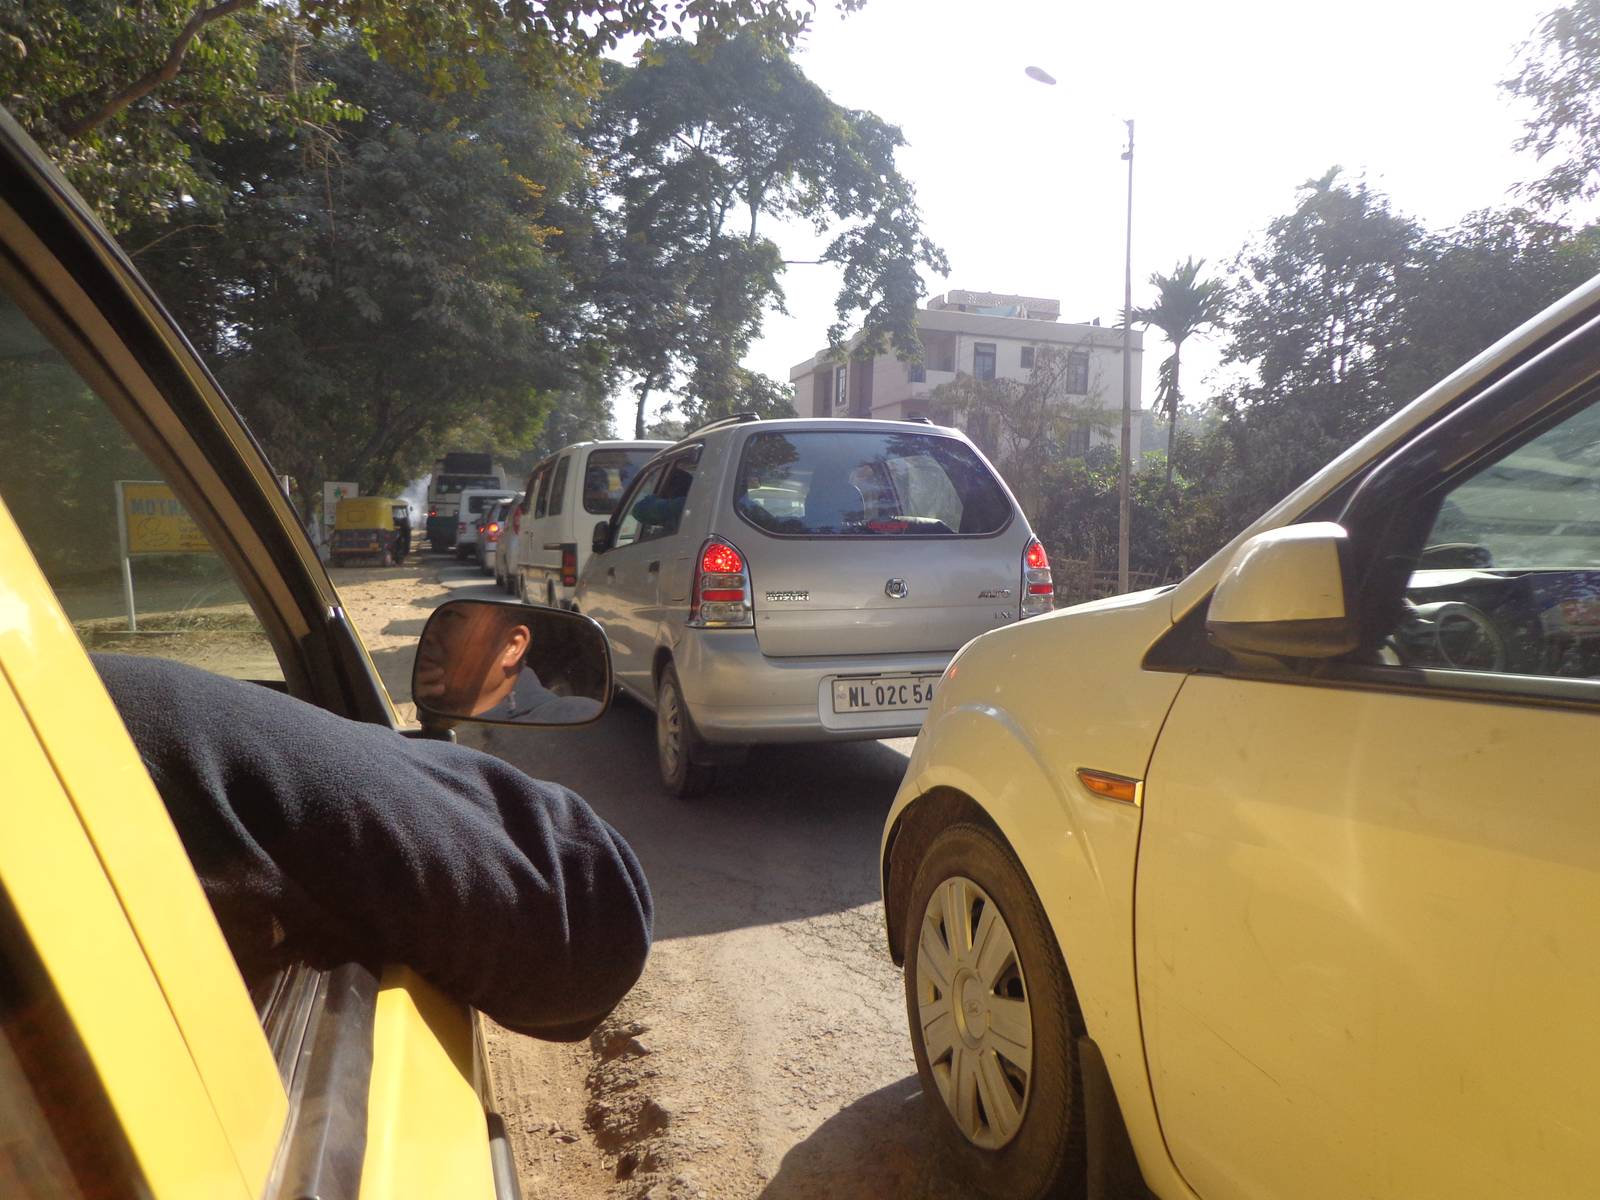 A bumper to bumper jab in Dimapur. Our taxi driver had already pulled the cab into the dirt pavement.